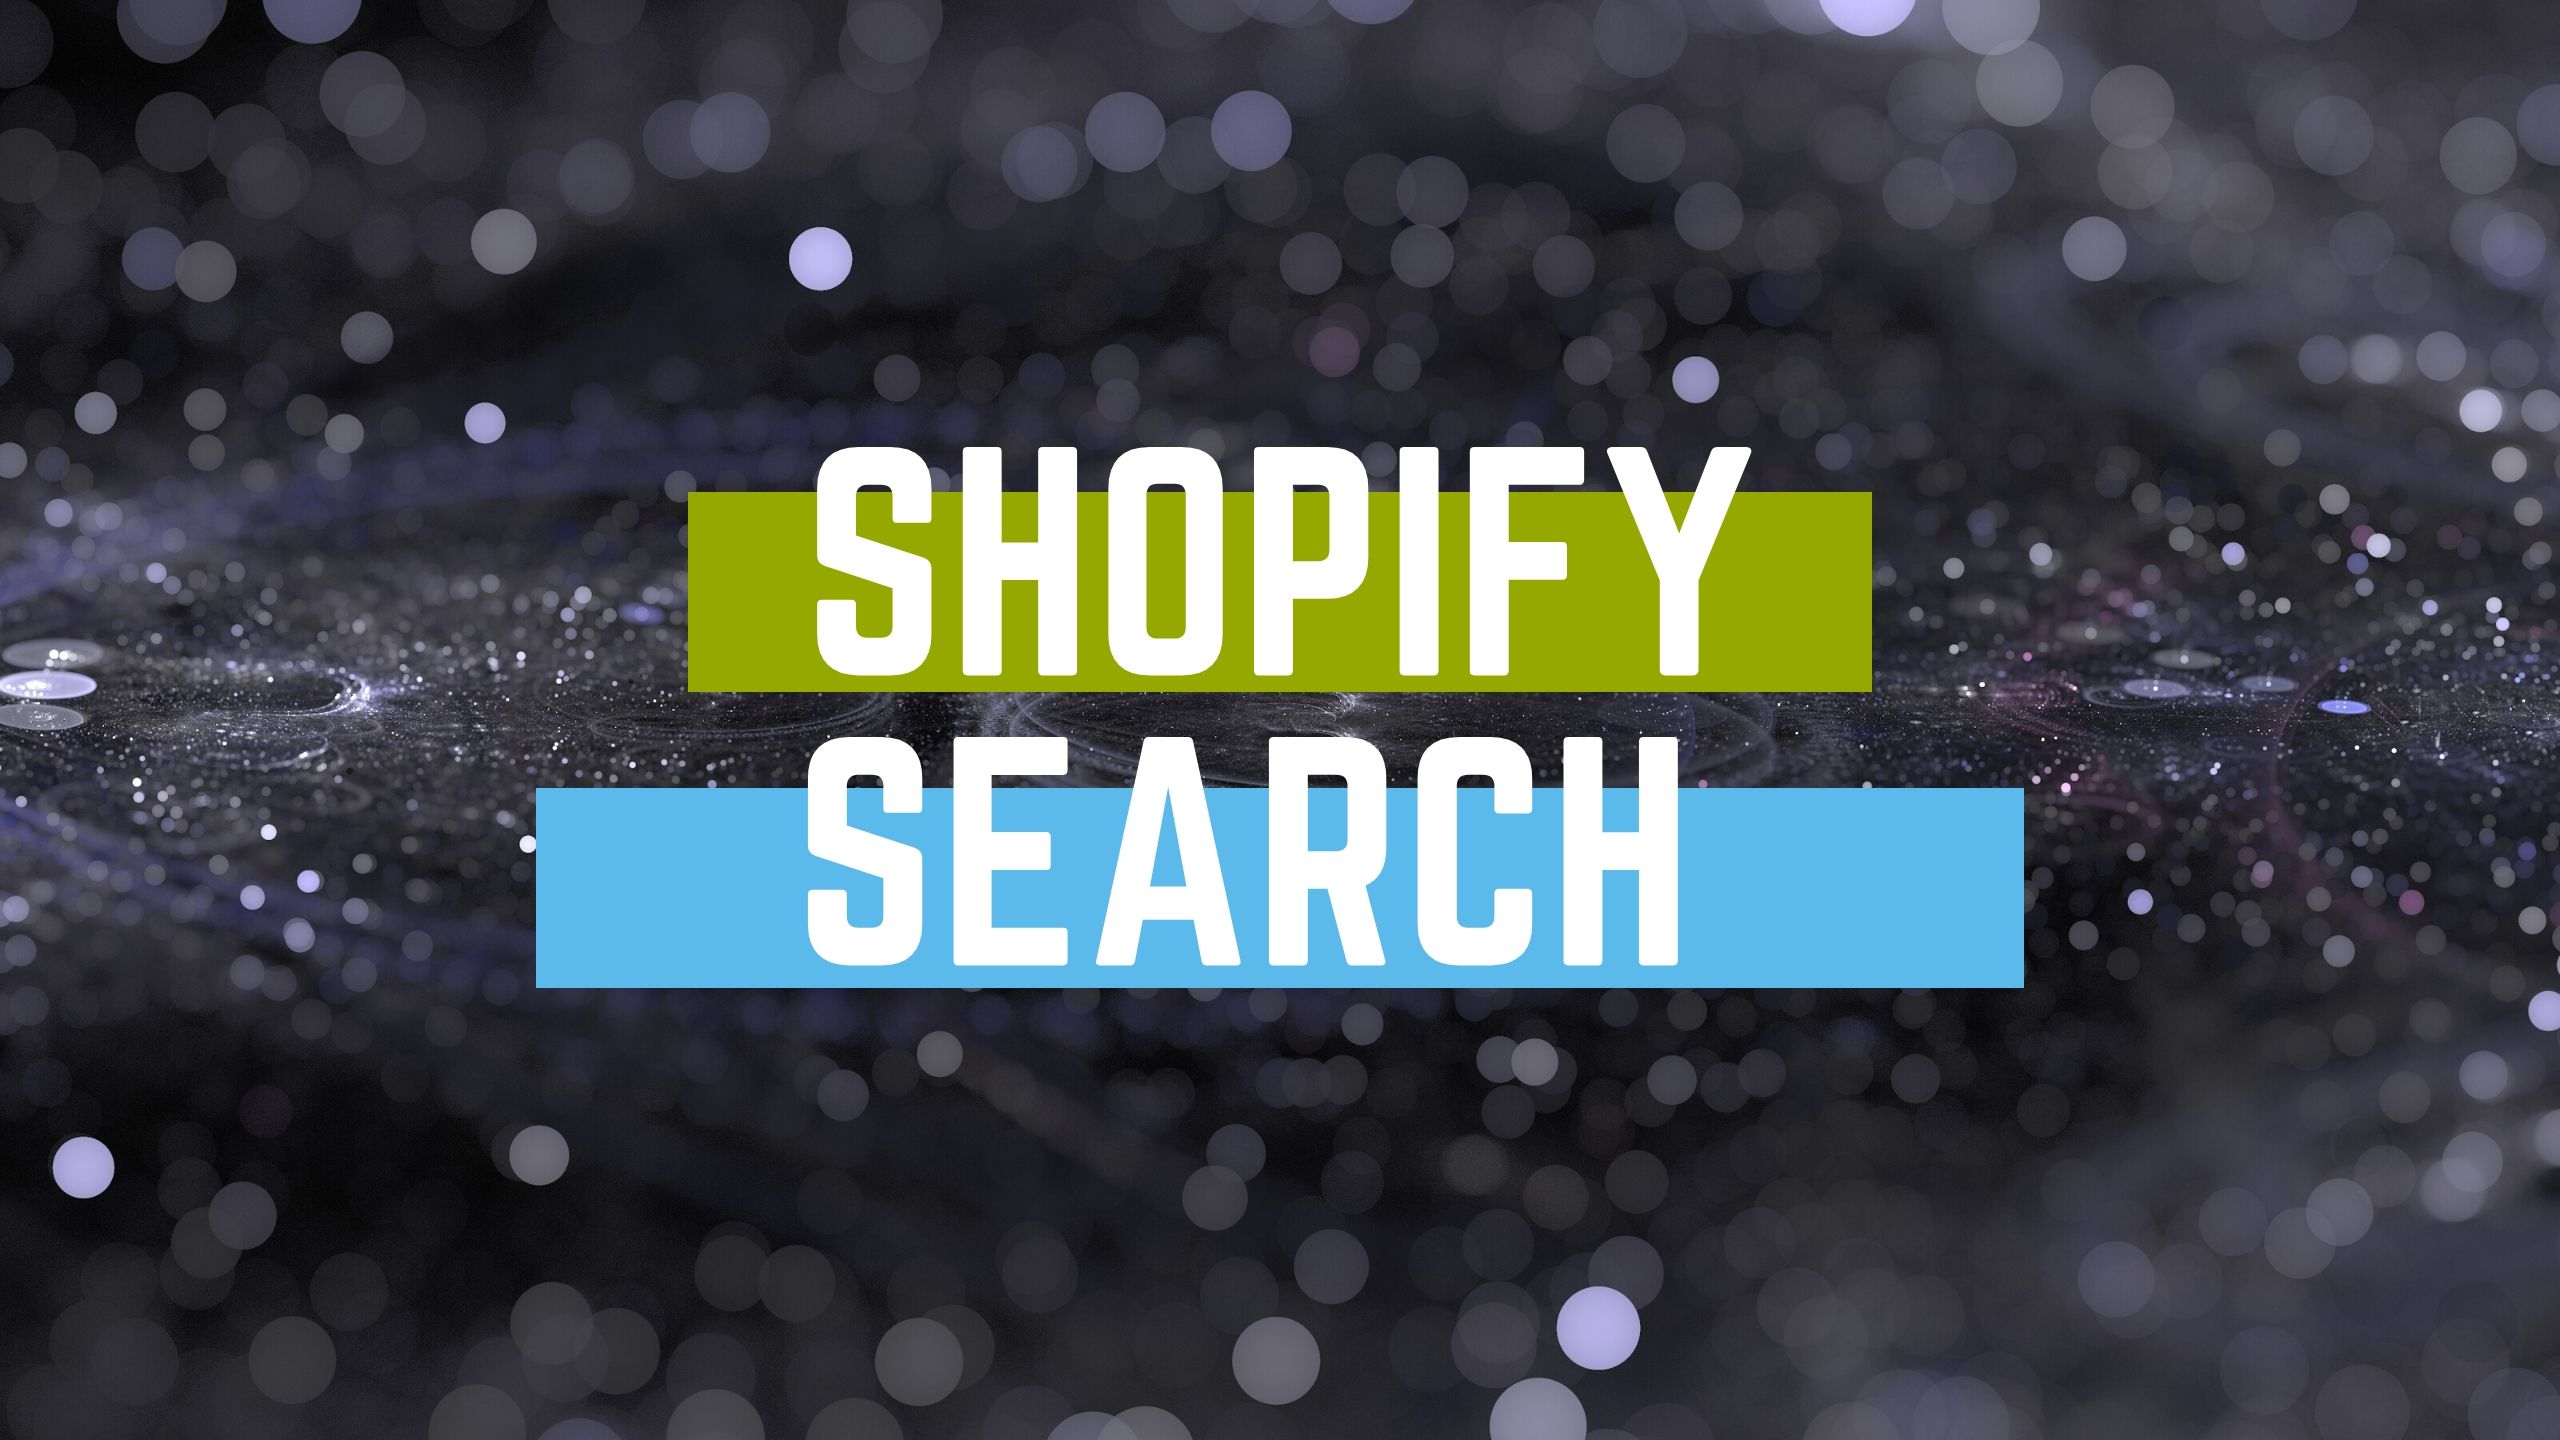 shopify search